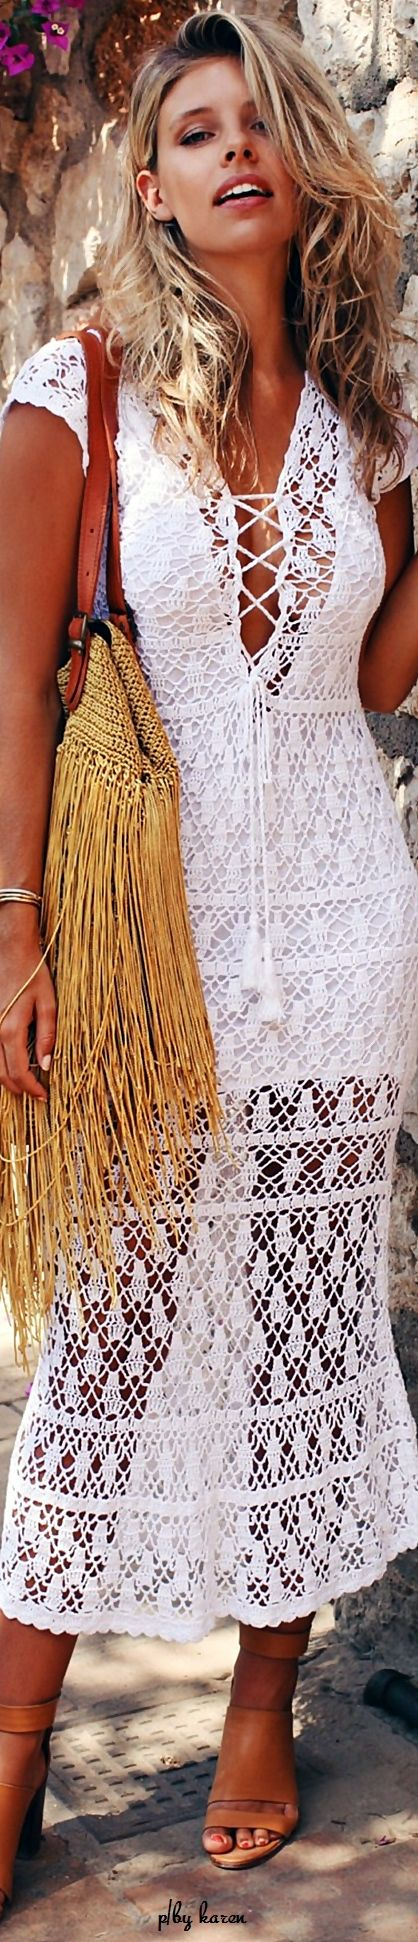 SUMMER FASHION Boho Chic